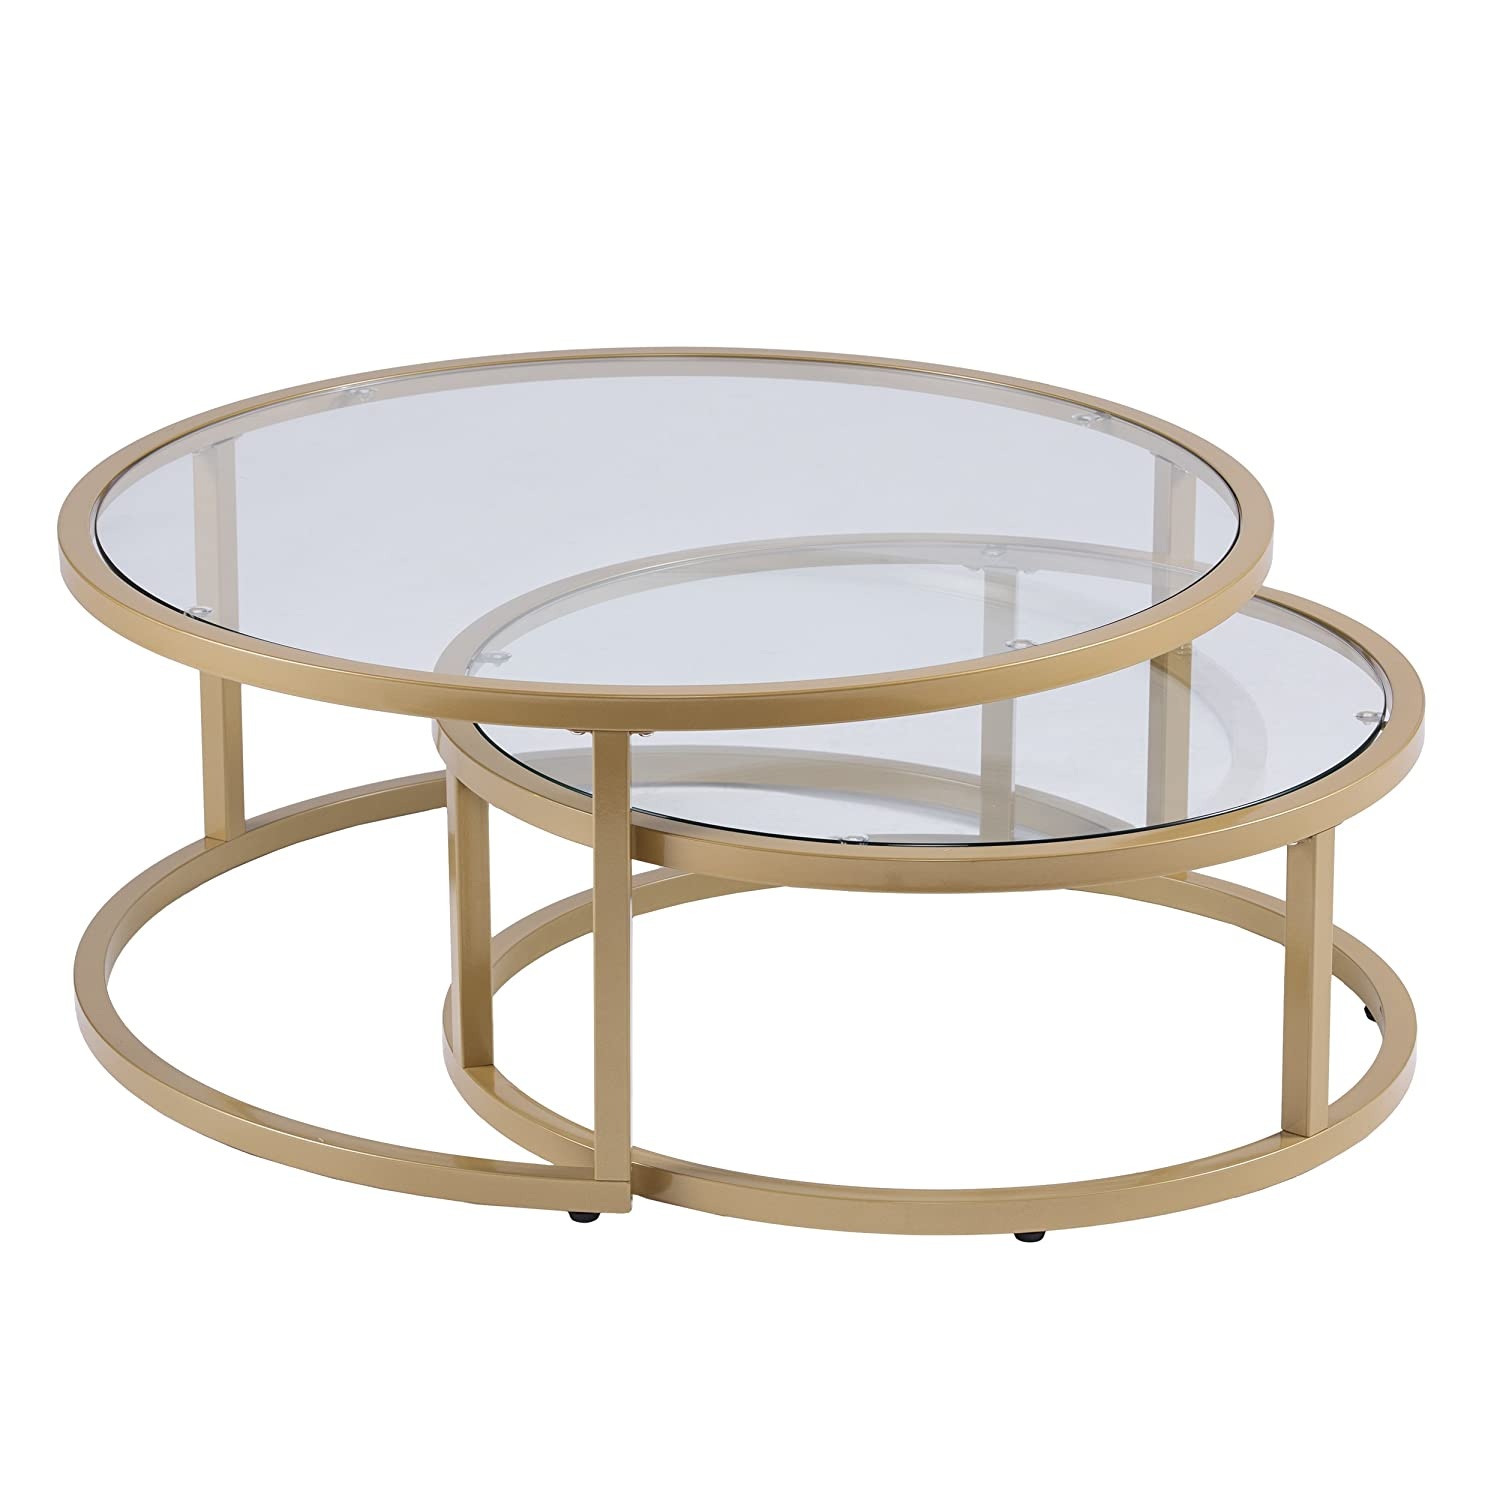 Furniture HotSpot – Gold Nesting Coffee Table - 2 Pc - Round - 35.5